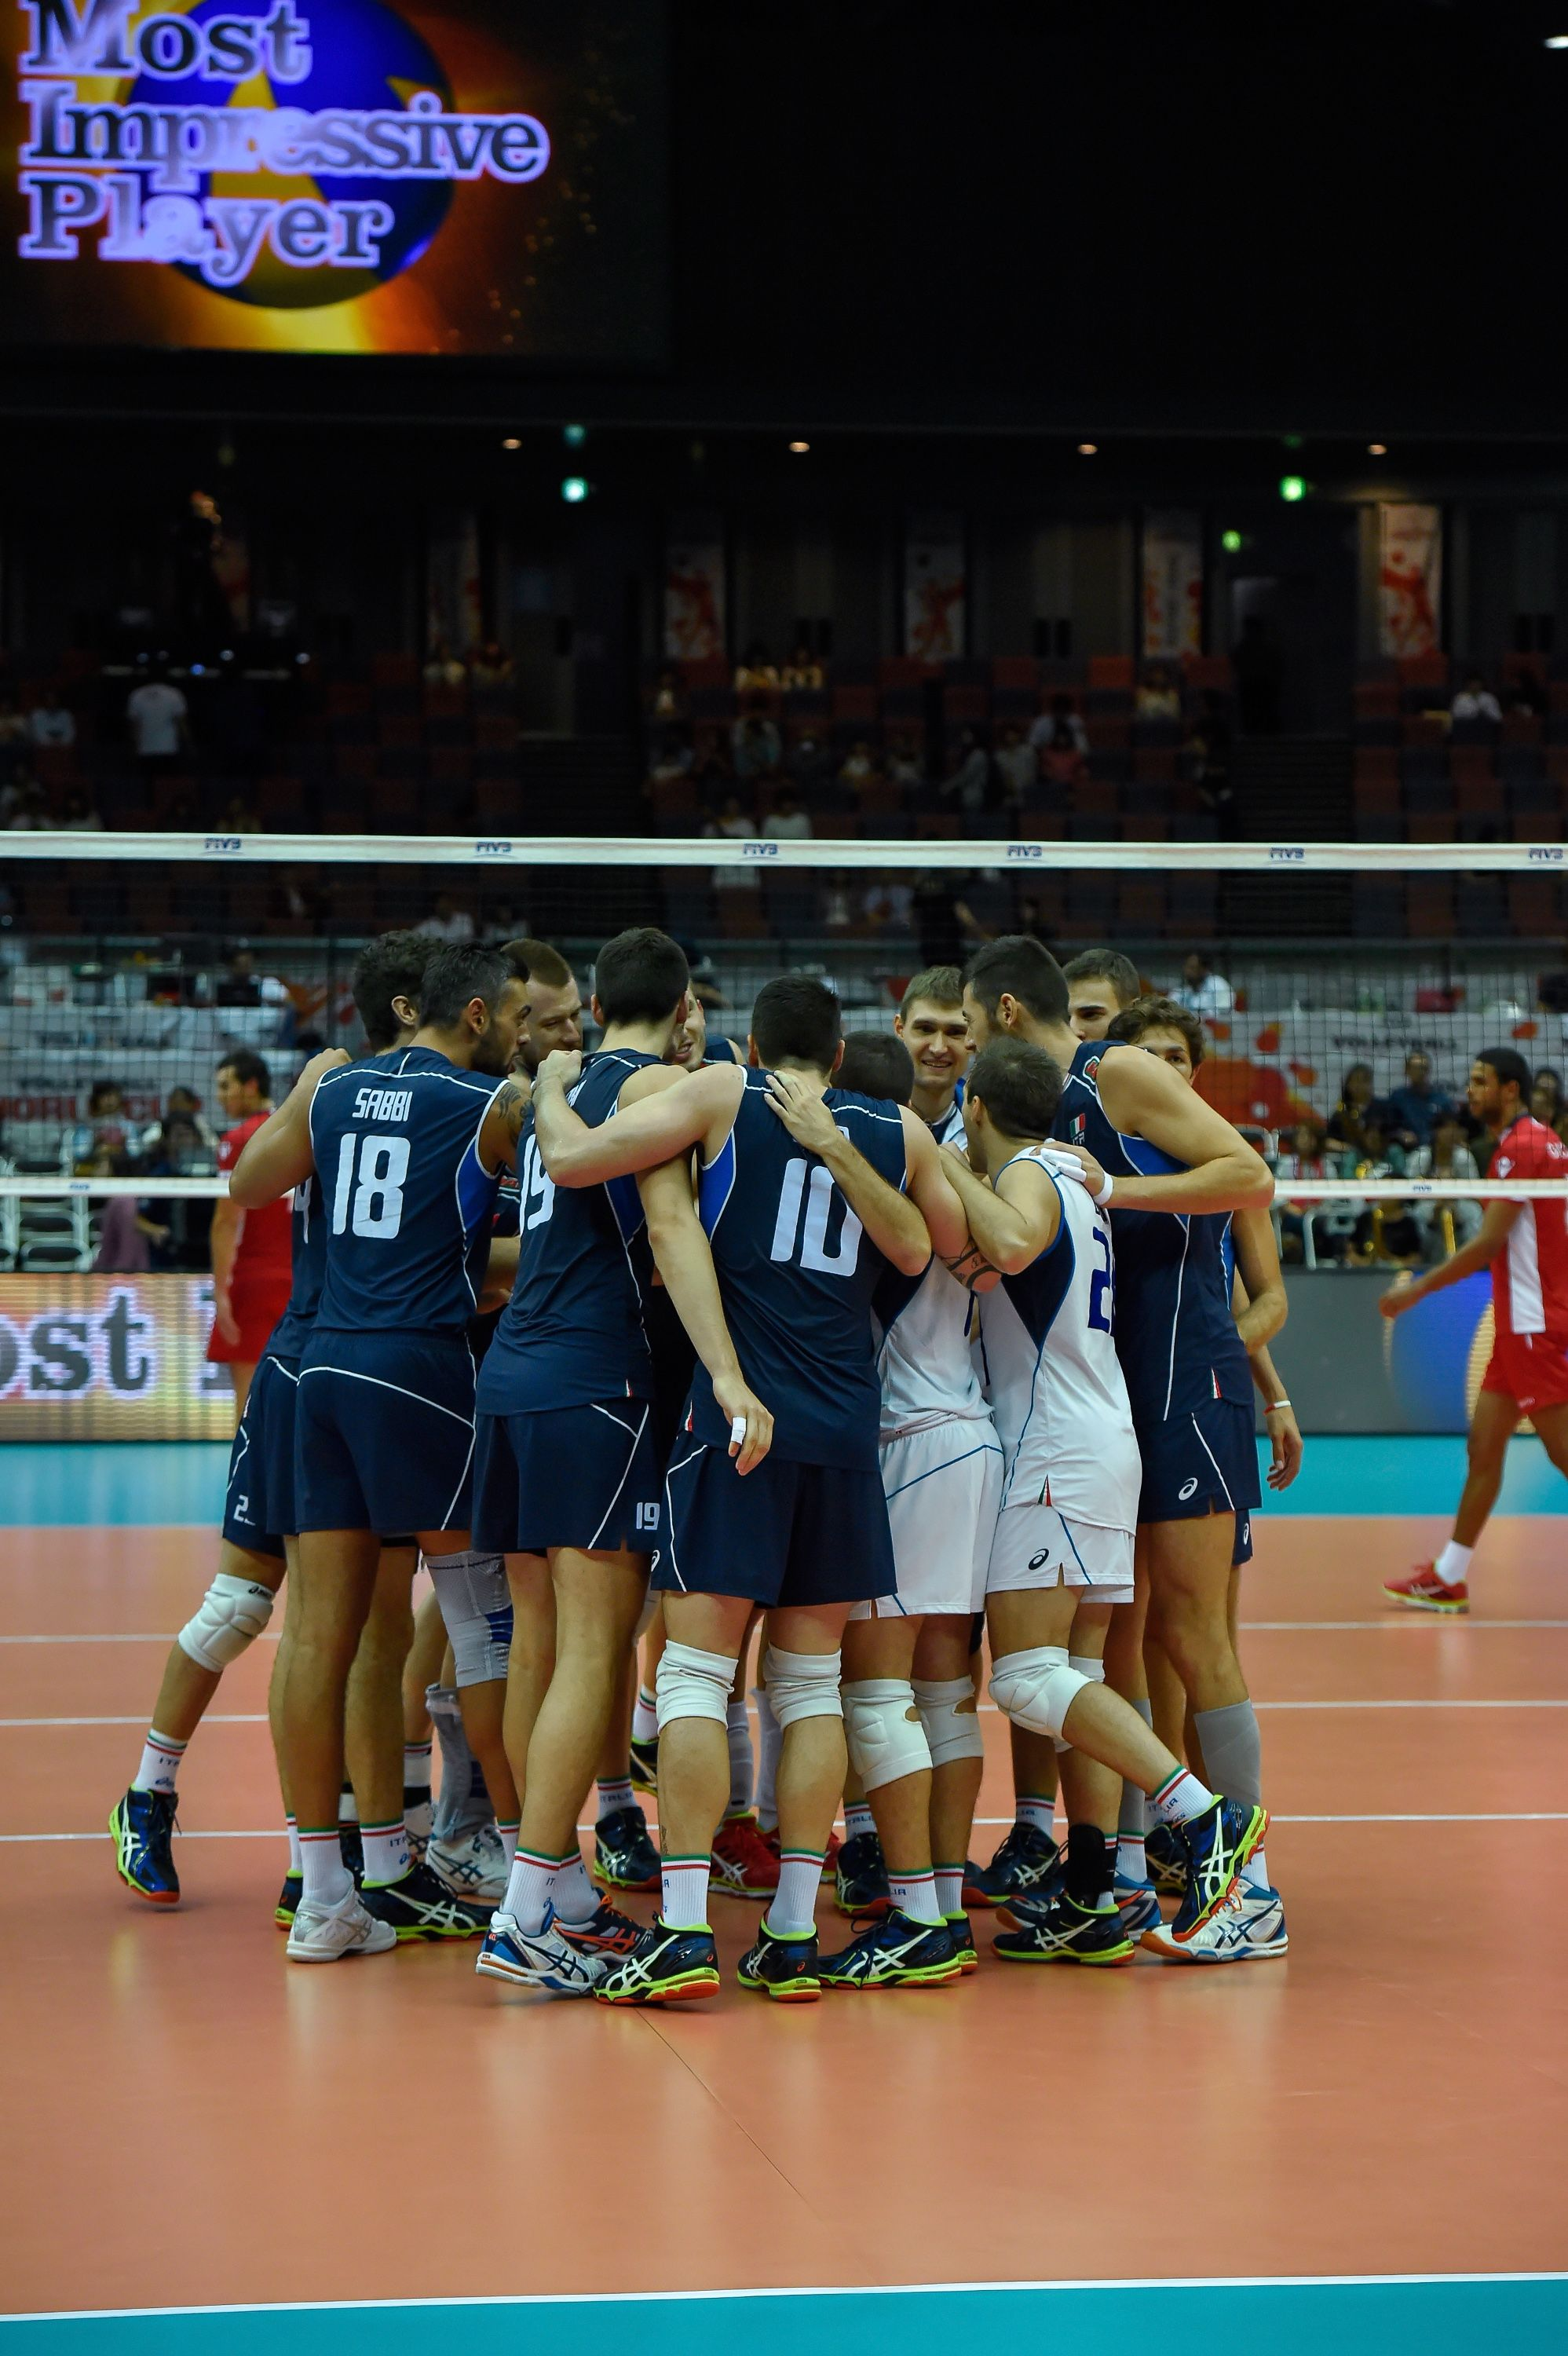 The Italian Players Form A Huddle After Winning The Match Over Tunisia Players Match Basketball Court